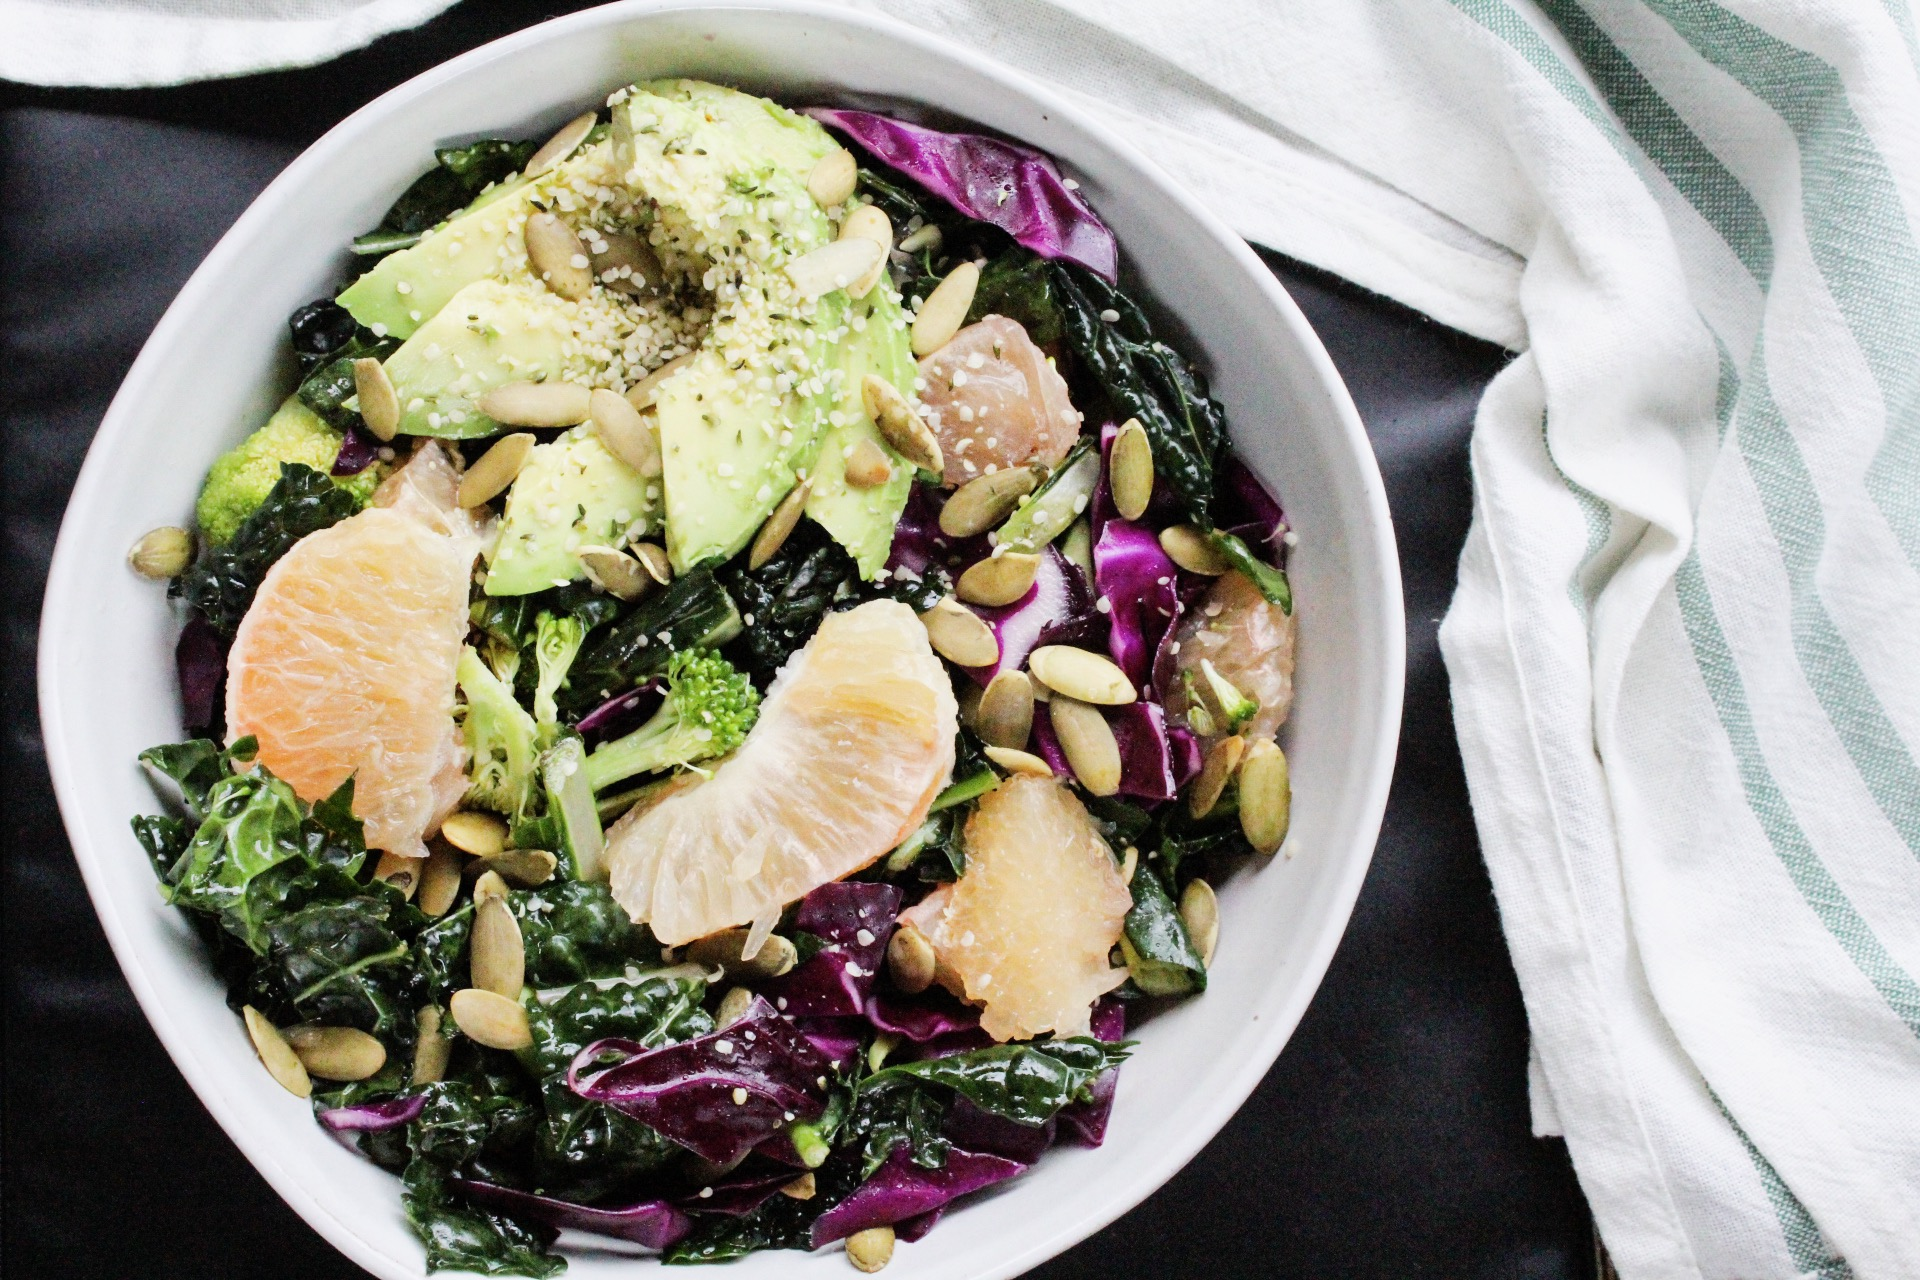 Kale, Grapefruit, Avocado Salad - Eleat Sports Nutrition